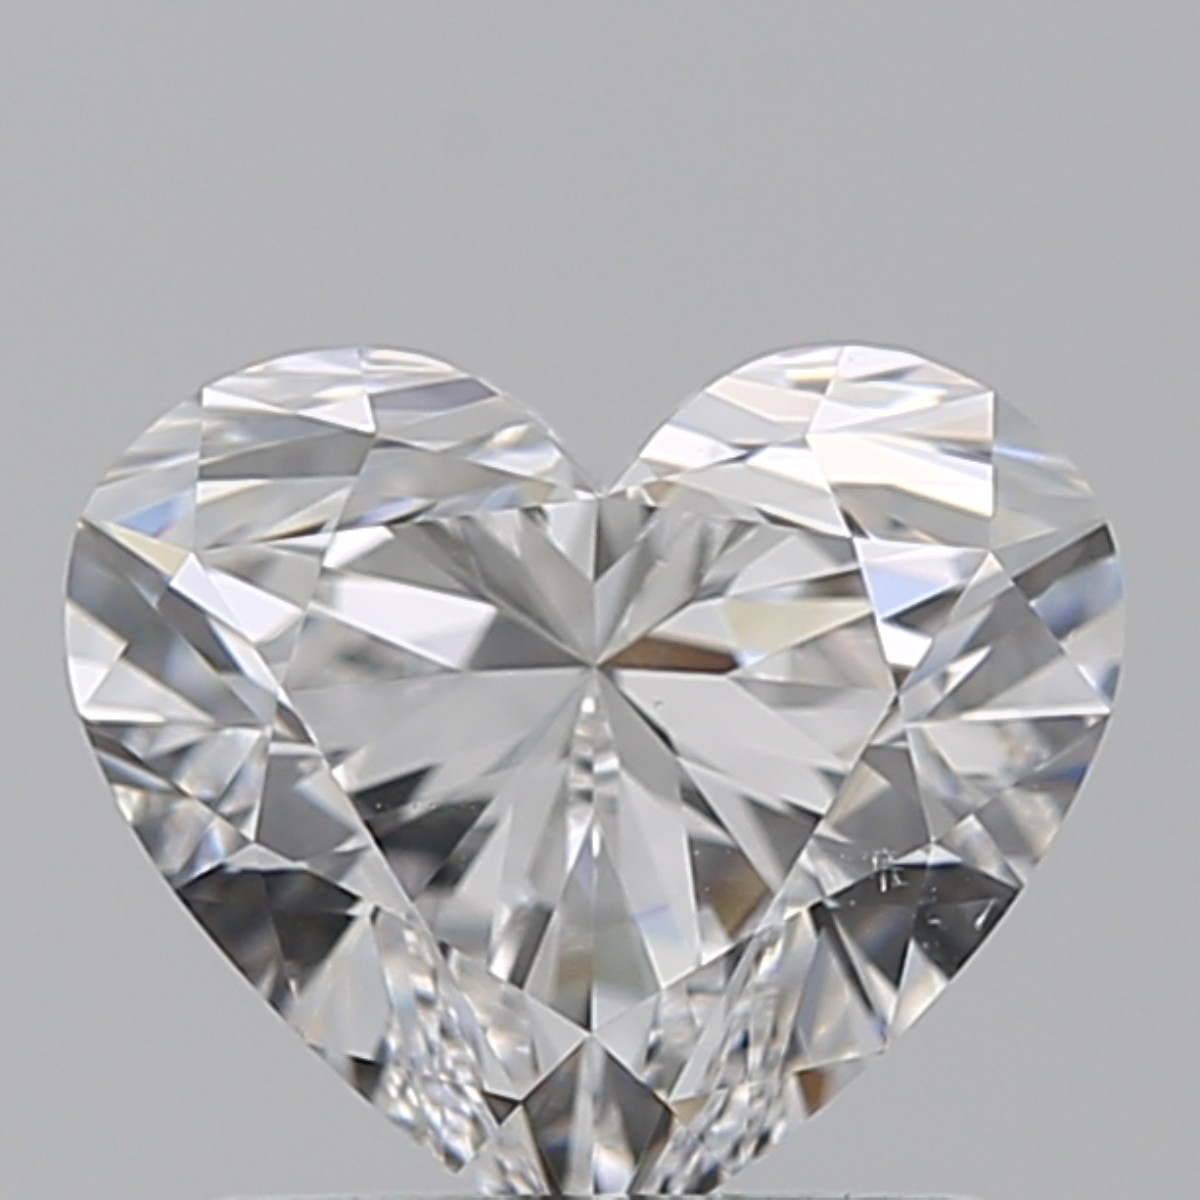 1.05 Carat Heart Diamond (E/VS2)